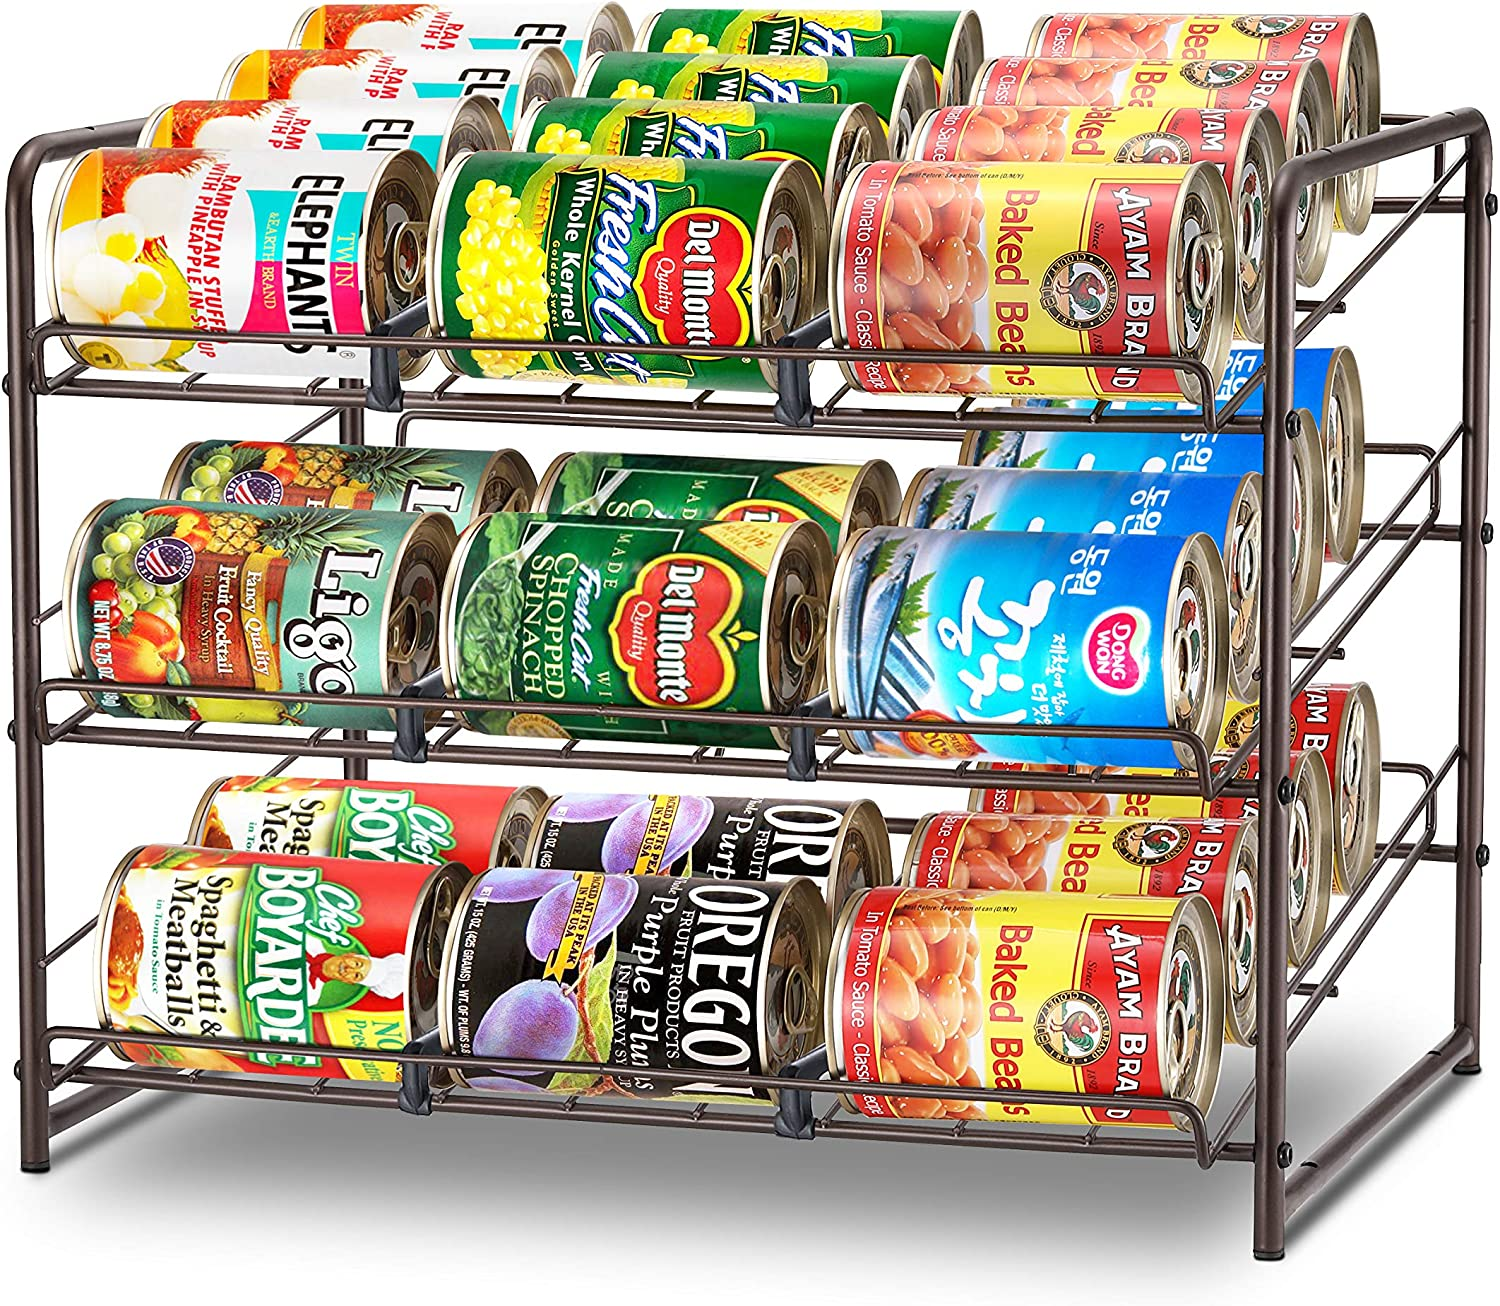 Simple Trending Can Rack Organizer, Stackable Can Storage Dispenser Holds up to 36 Cans for Kitchen Cabinet or Pantry, Bronze